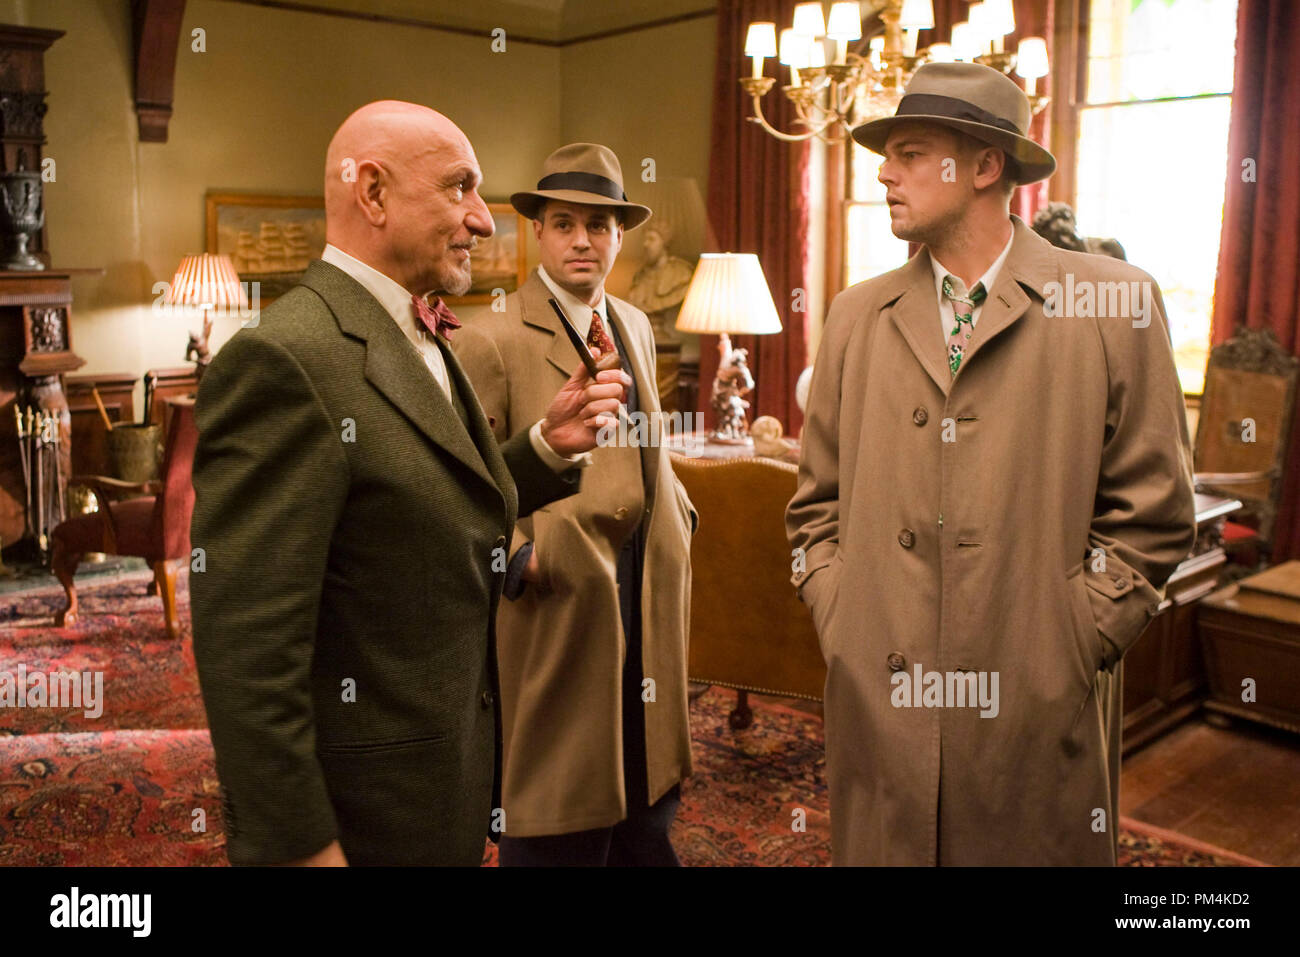 """(Left to right) Dr. Cawley (Ben Kingsley) hears Chuck Aule (Mark Ruffalo) and Teddy Daniels' (Leonardo DiCaprio) suspicions about the mysterious disappearance on an island prison for the criminally insane in the thriller """"Shutter Island."""" - Stock Image"""